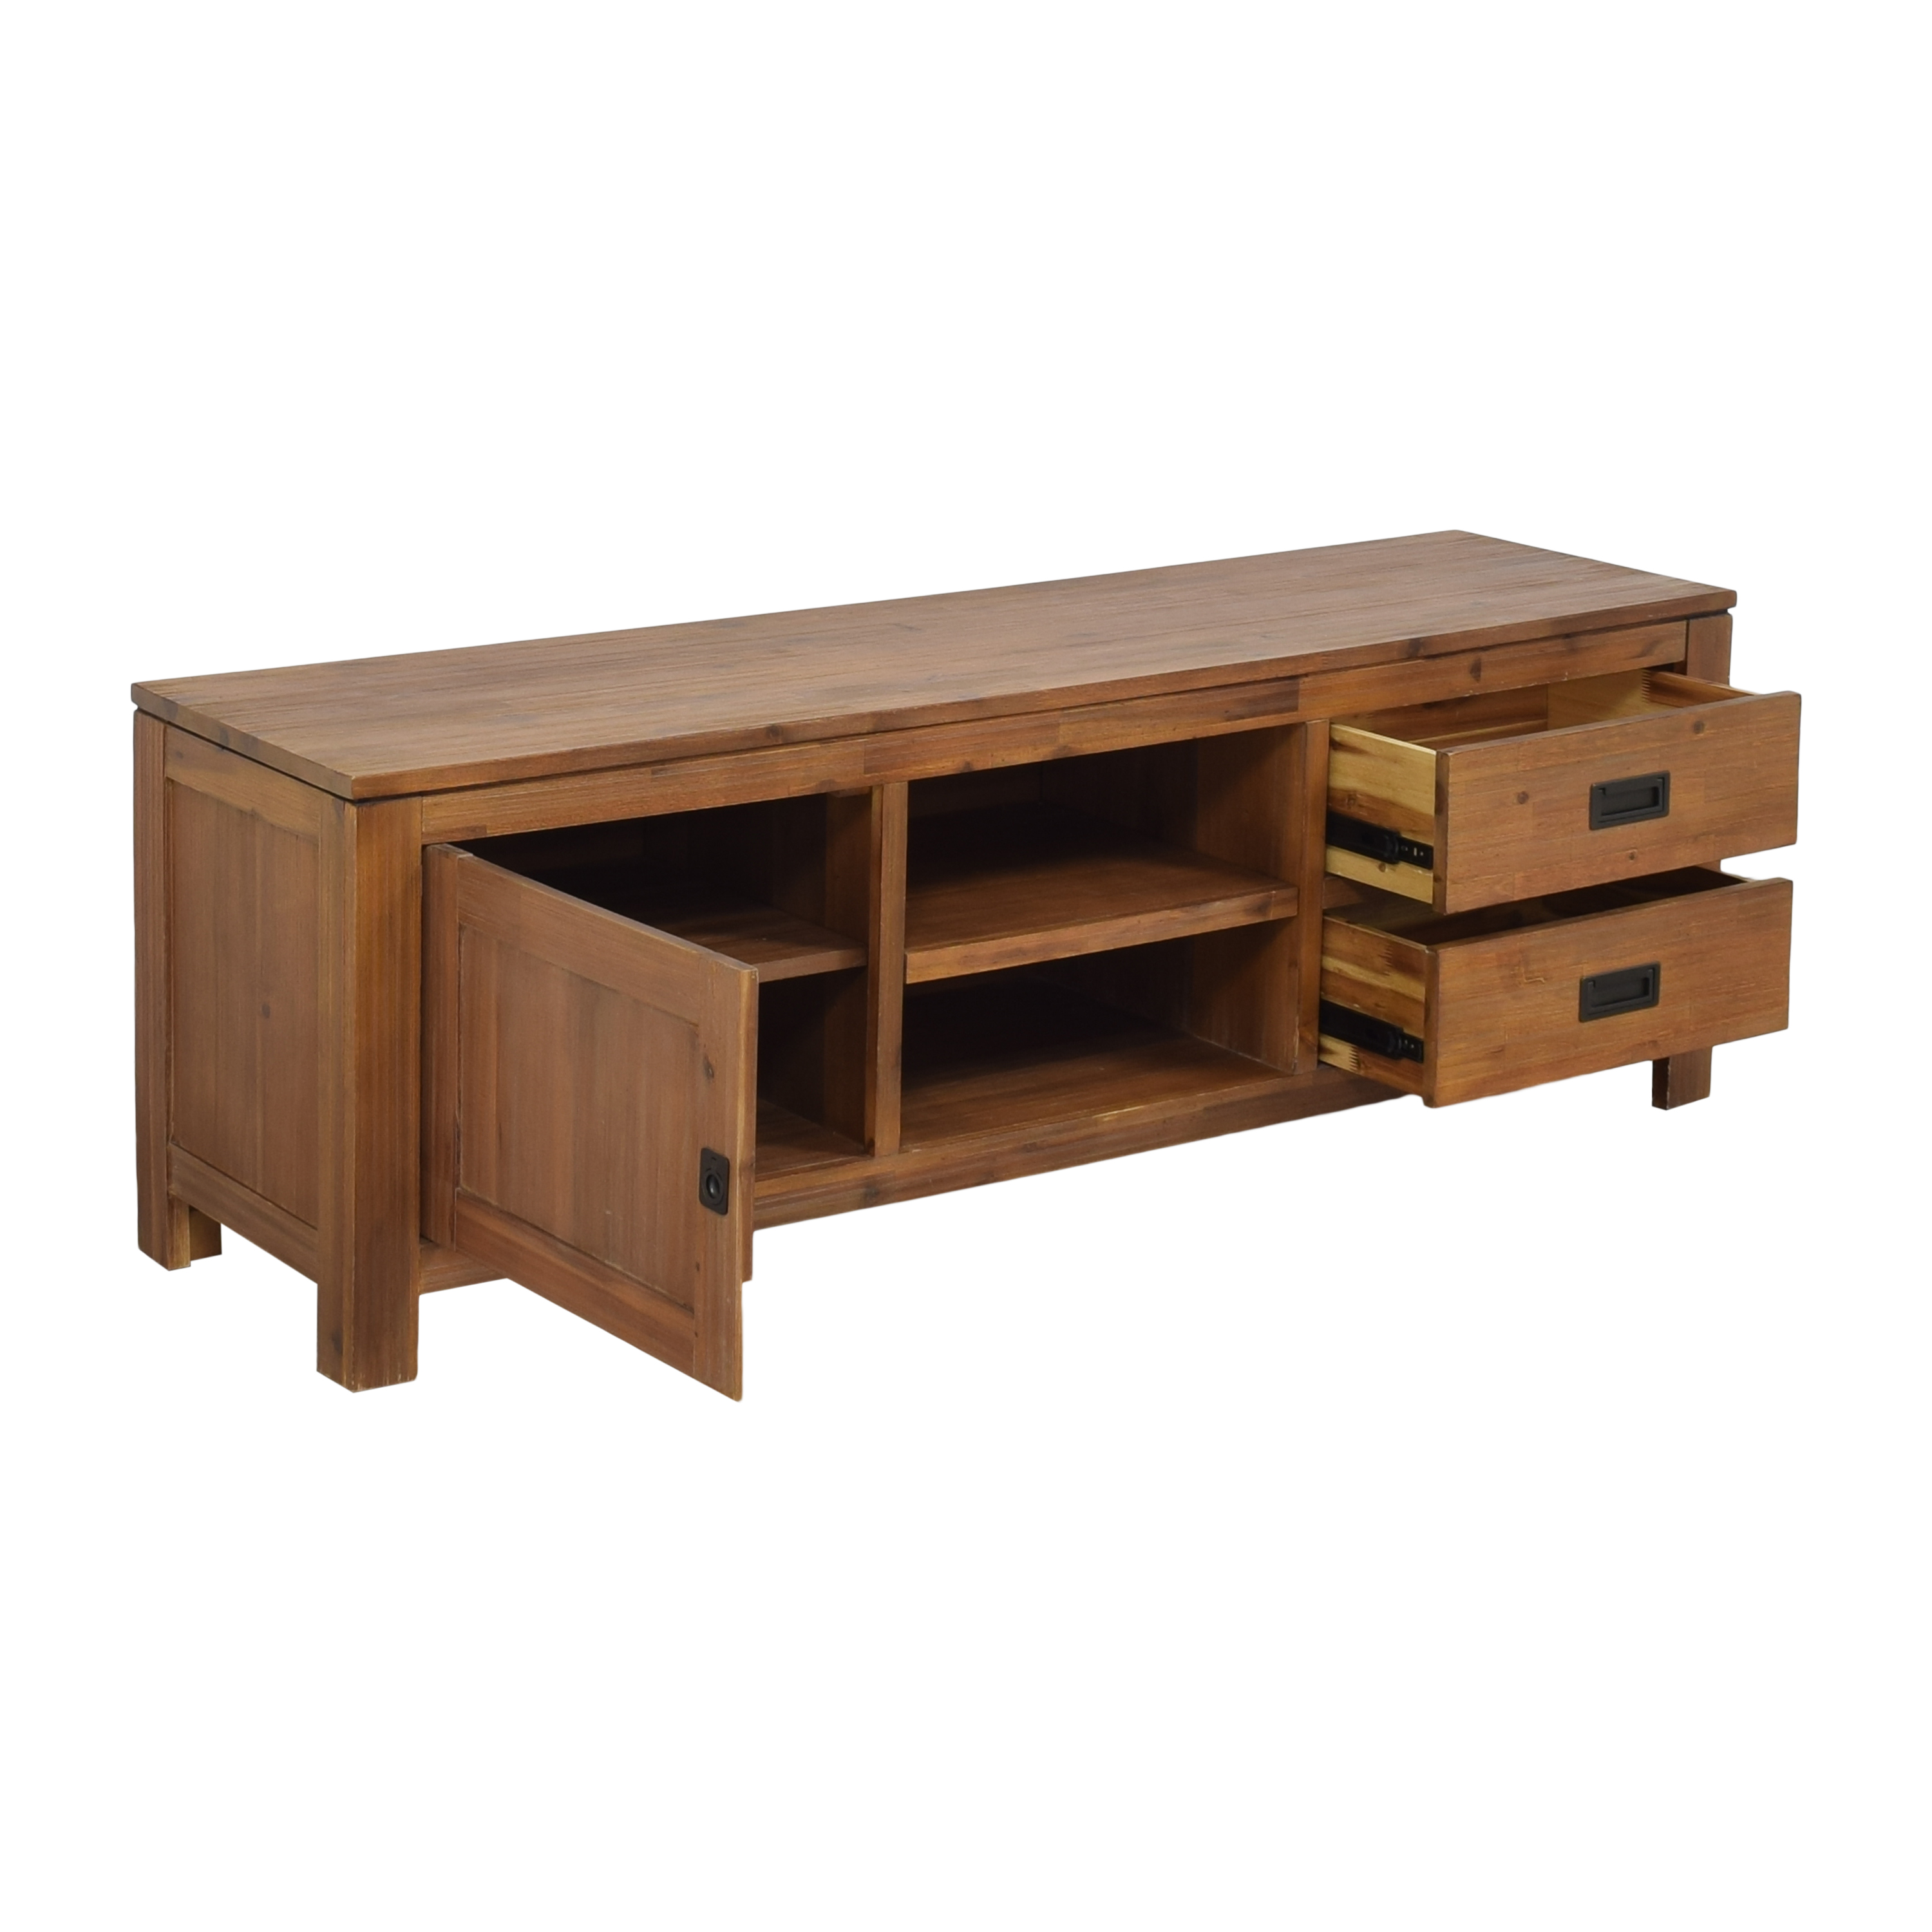 Macy's Macy's Champagne TV Stand second hand